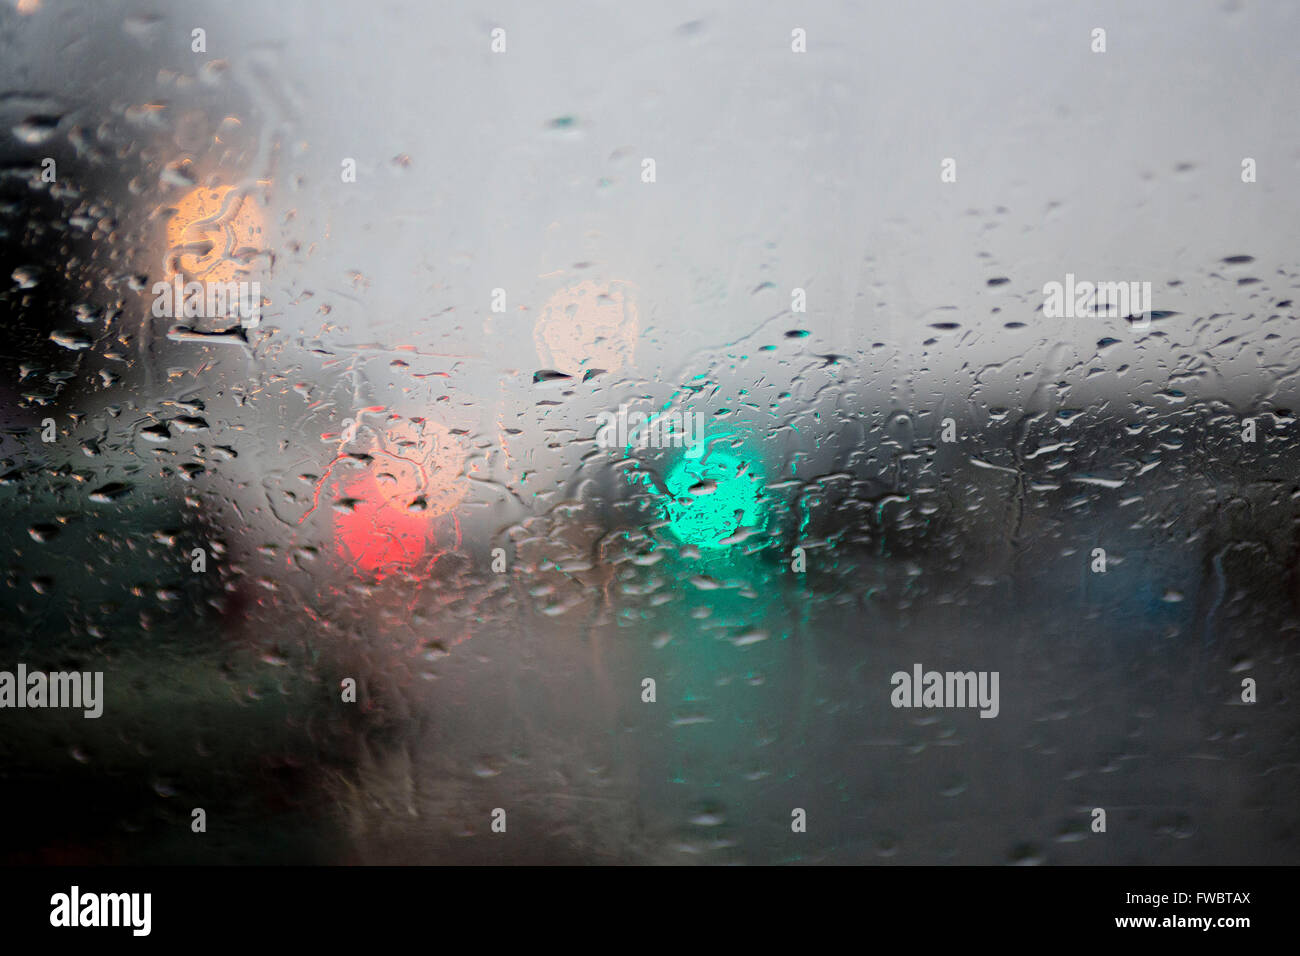 Beads of rain on a window pane - Stock Image